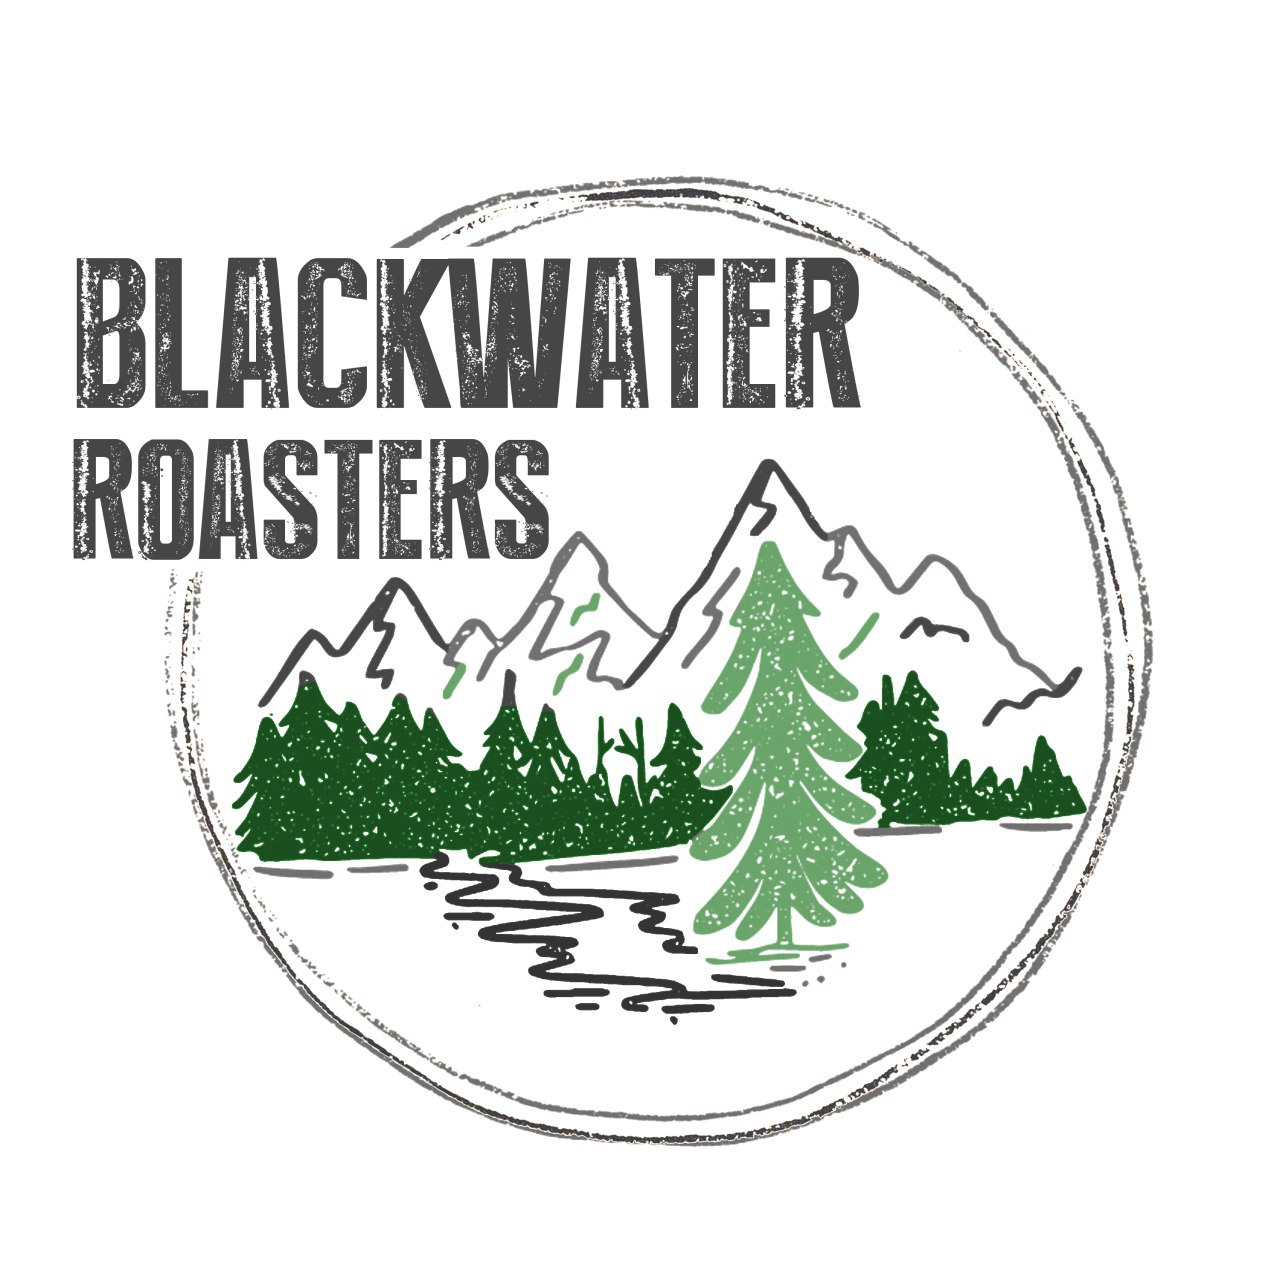 Blackwater Roasters